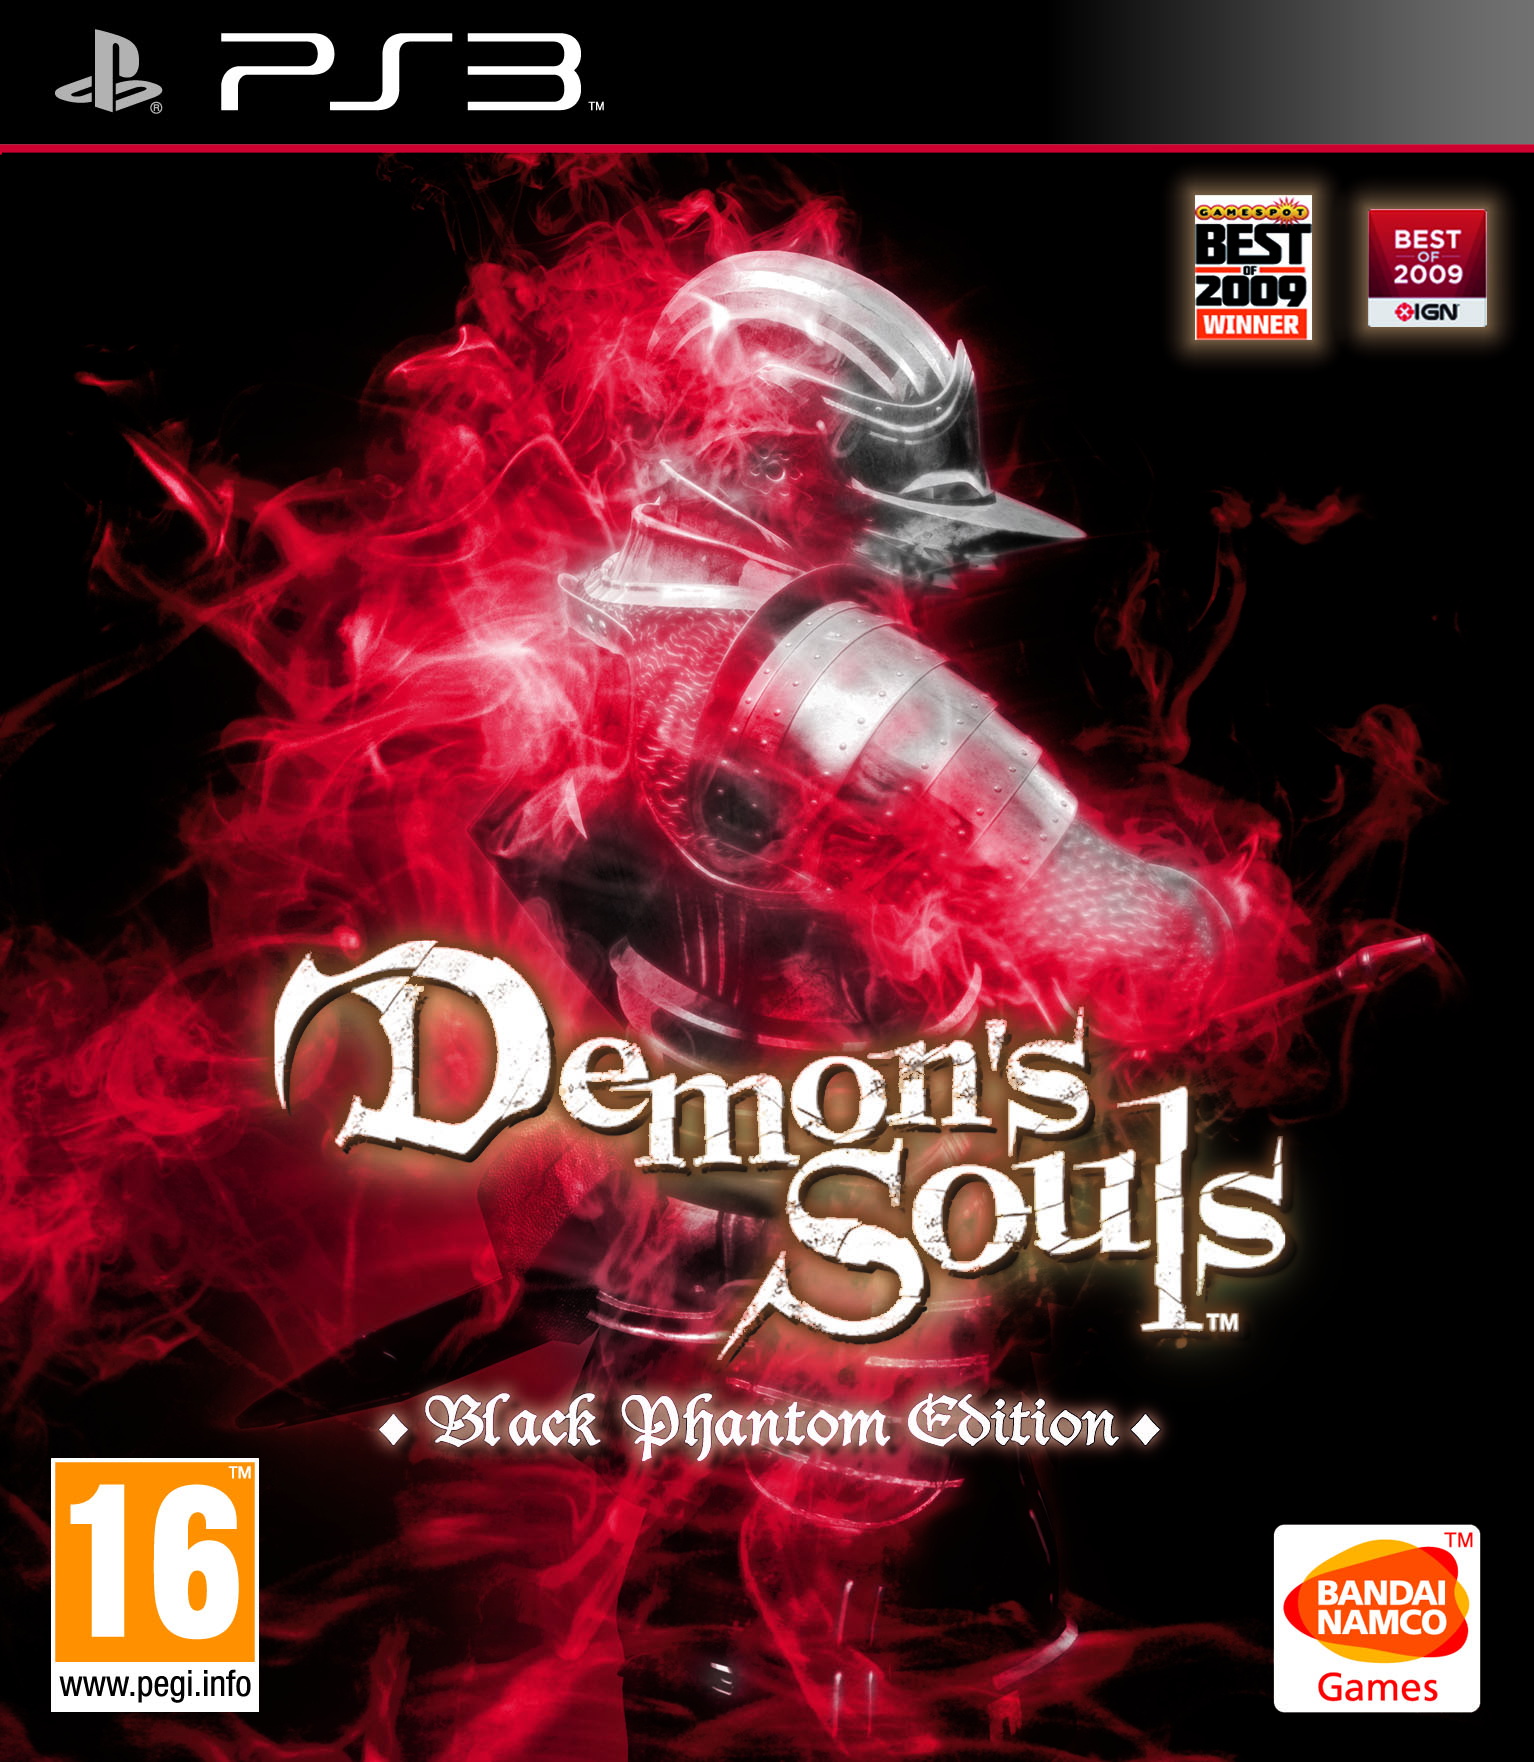 european version - black phantom edition box art